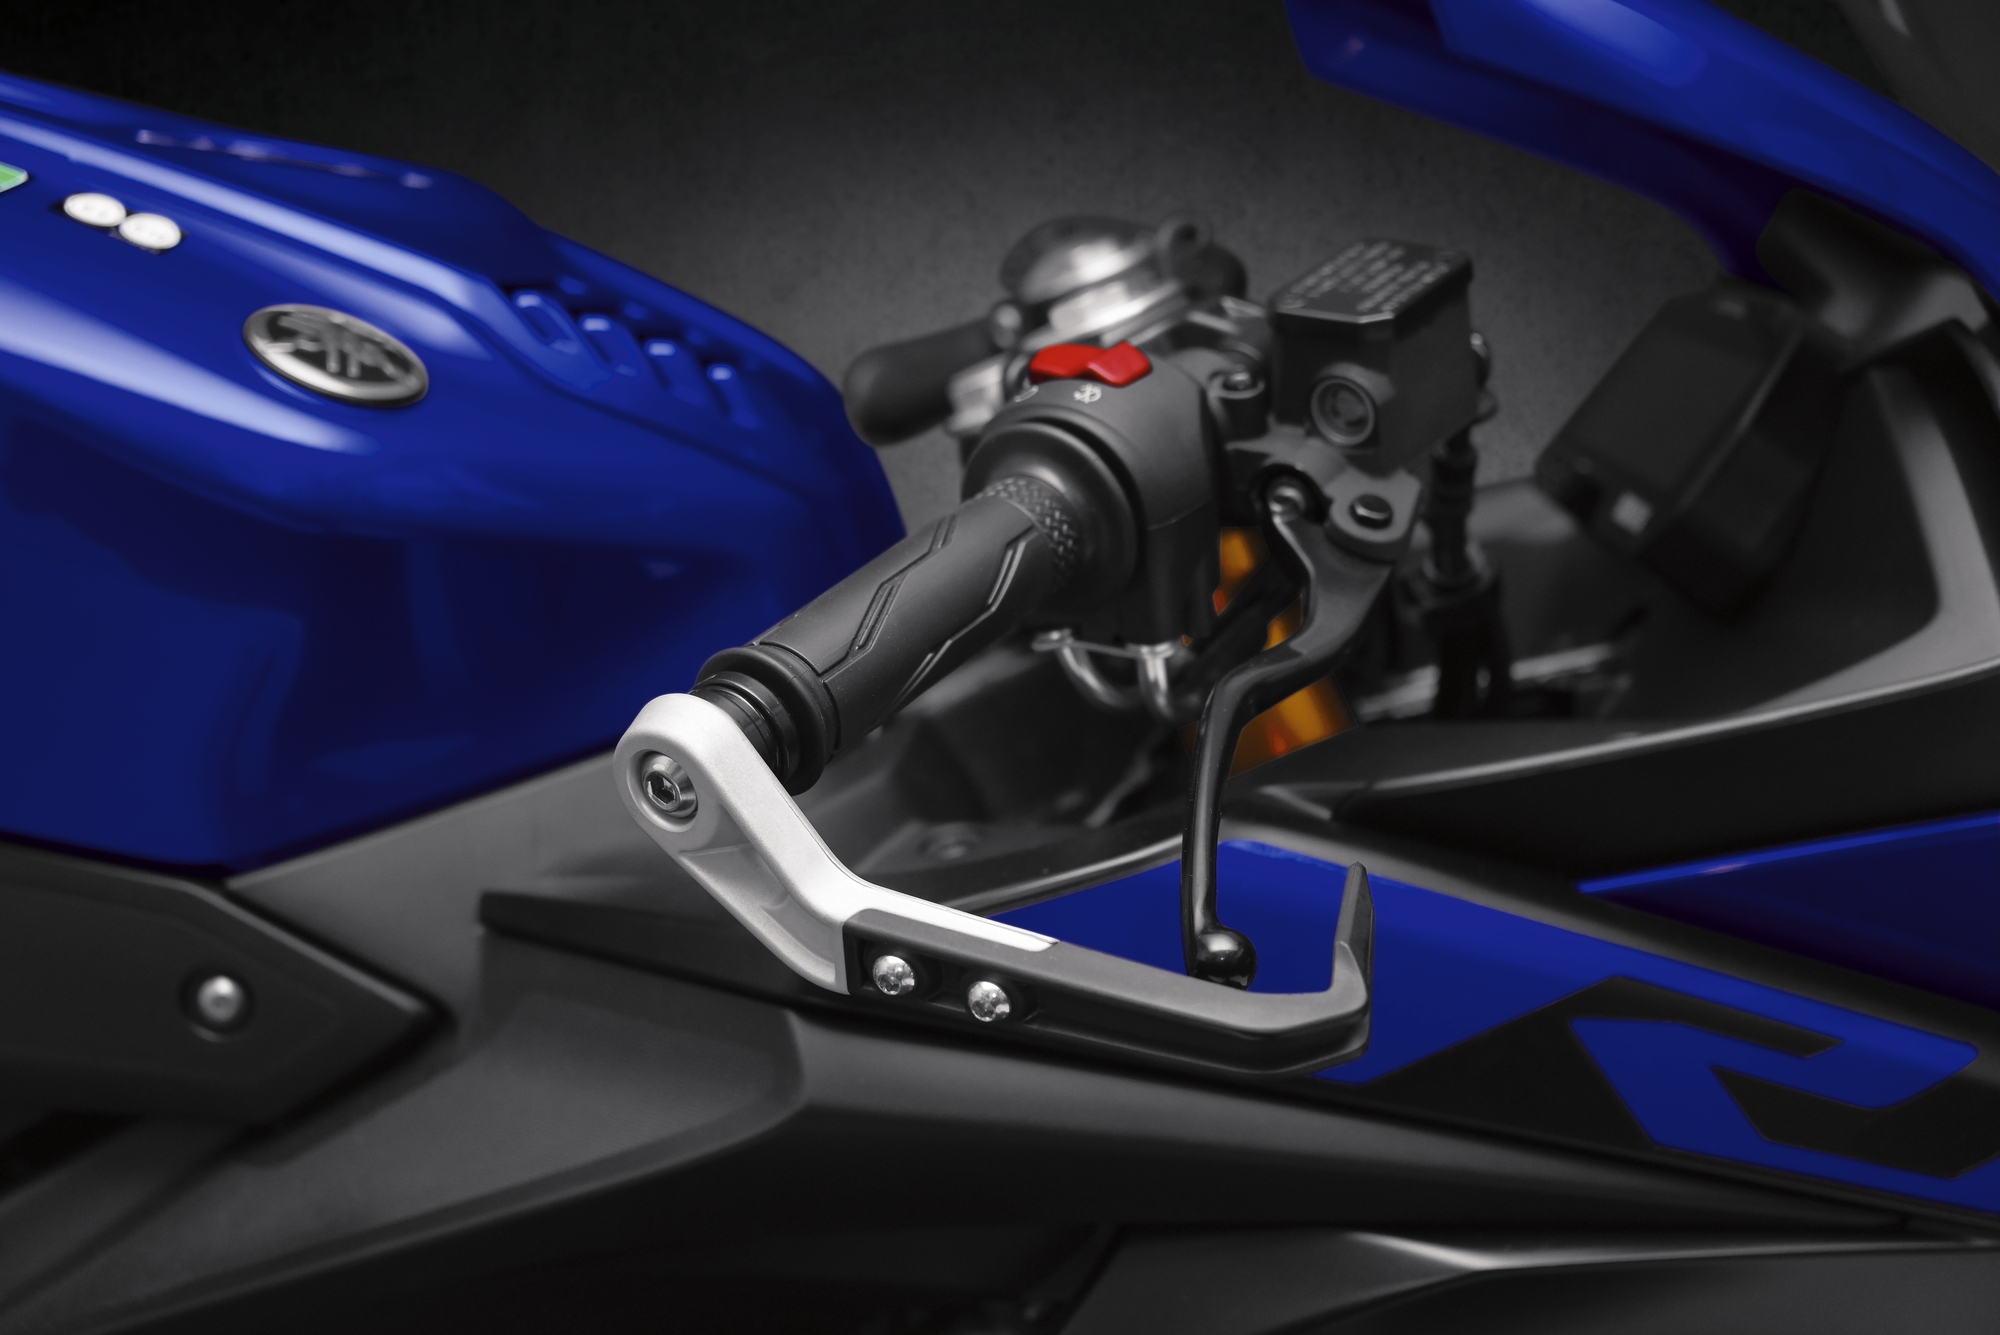 Schema Elettrico Yamaha R : Yamaha yzf r features and technical specifications